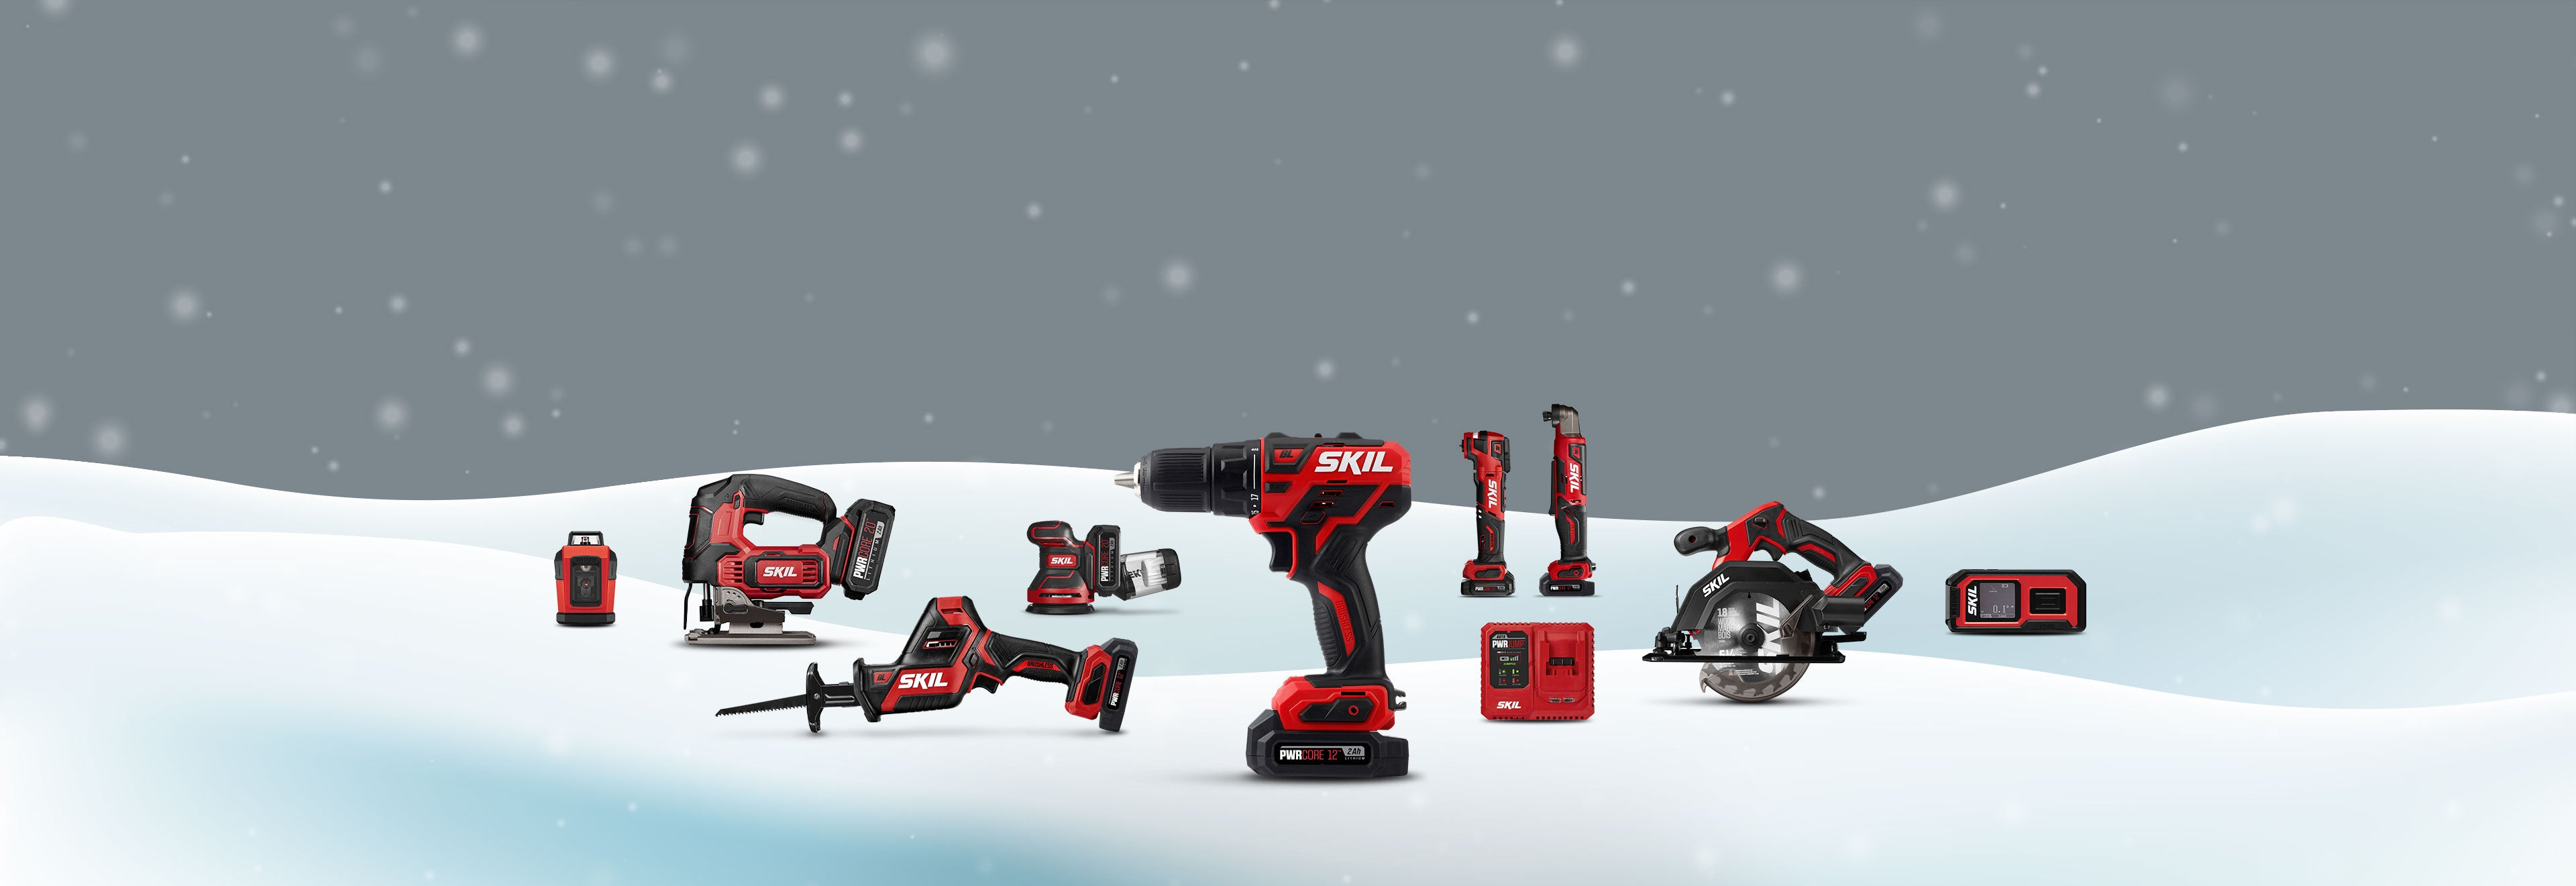 Innovative, power-packed tools for everyone on your list.